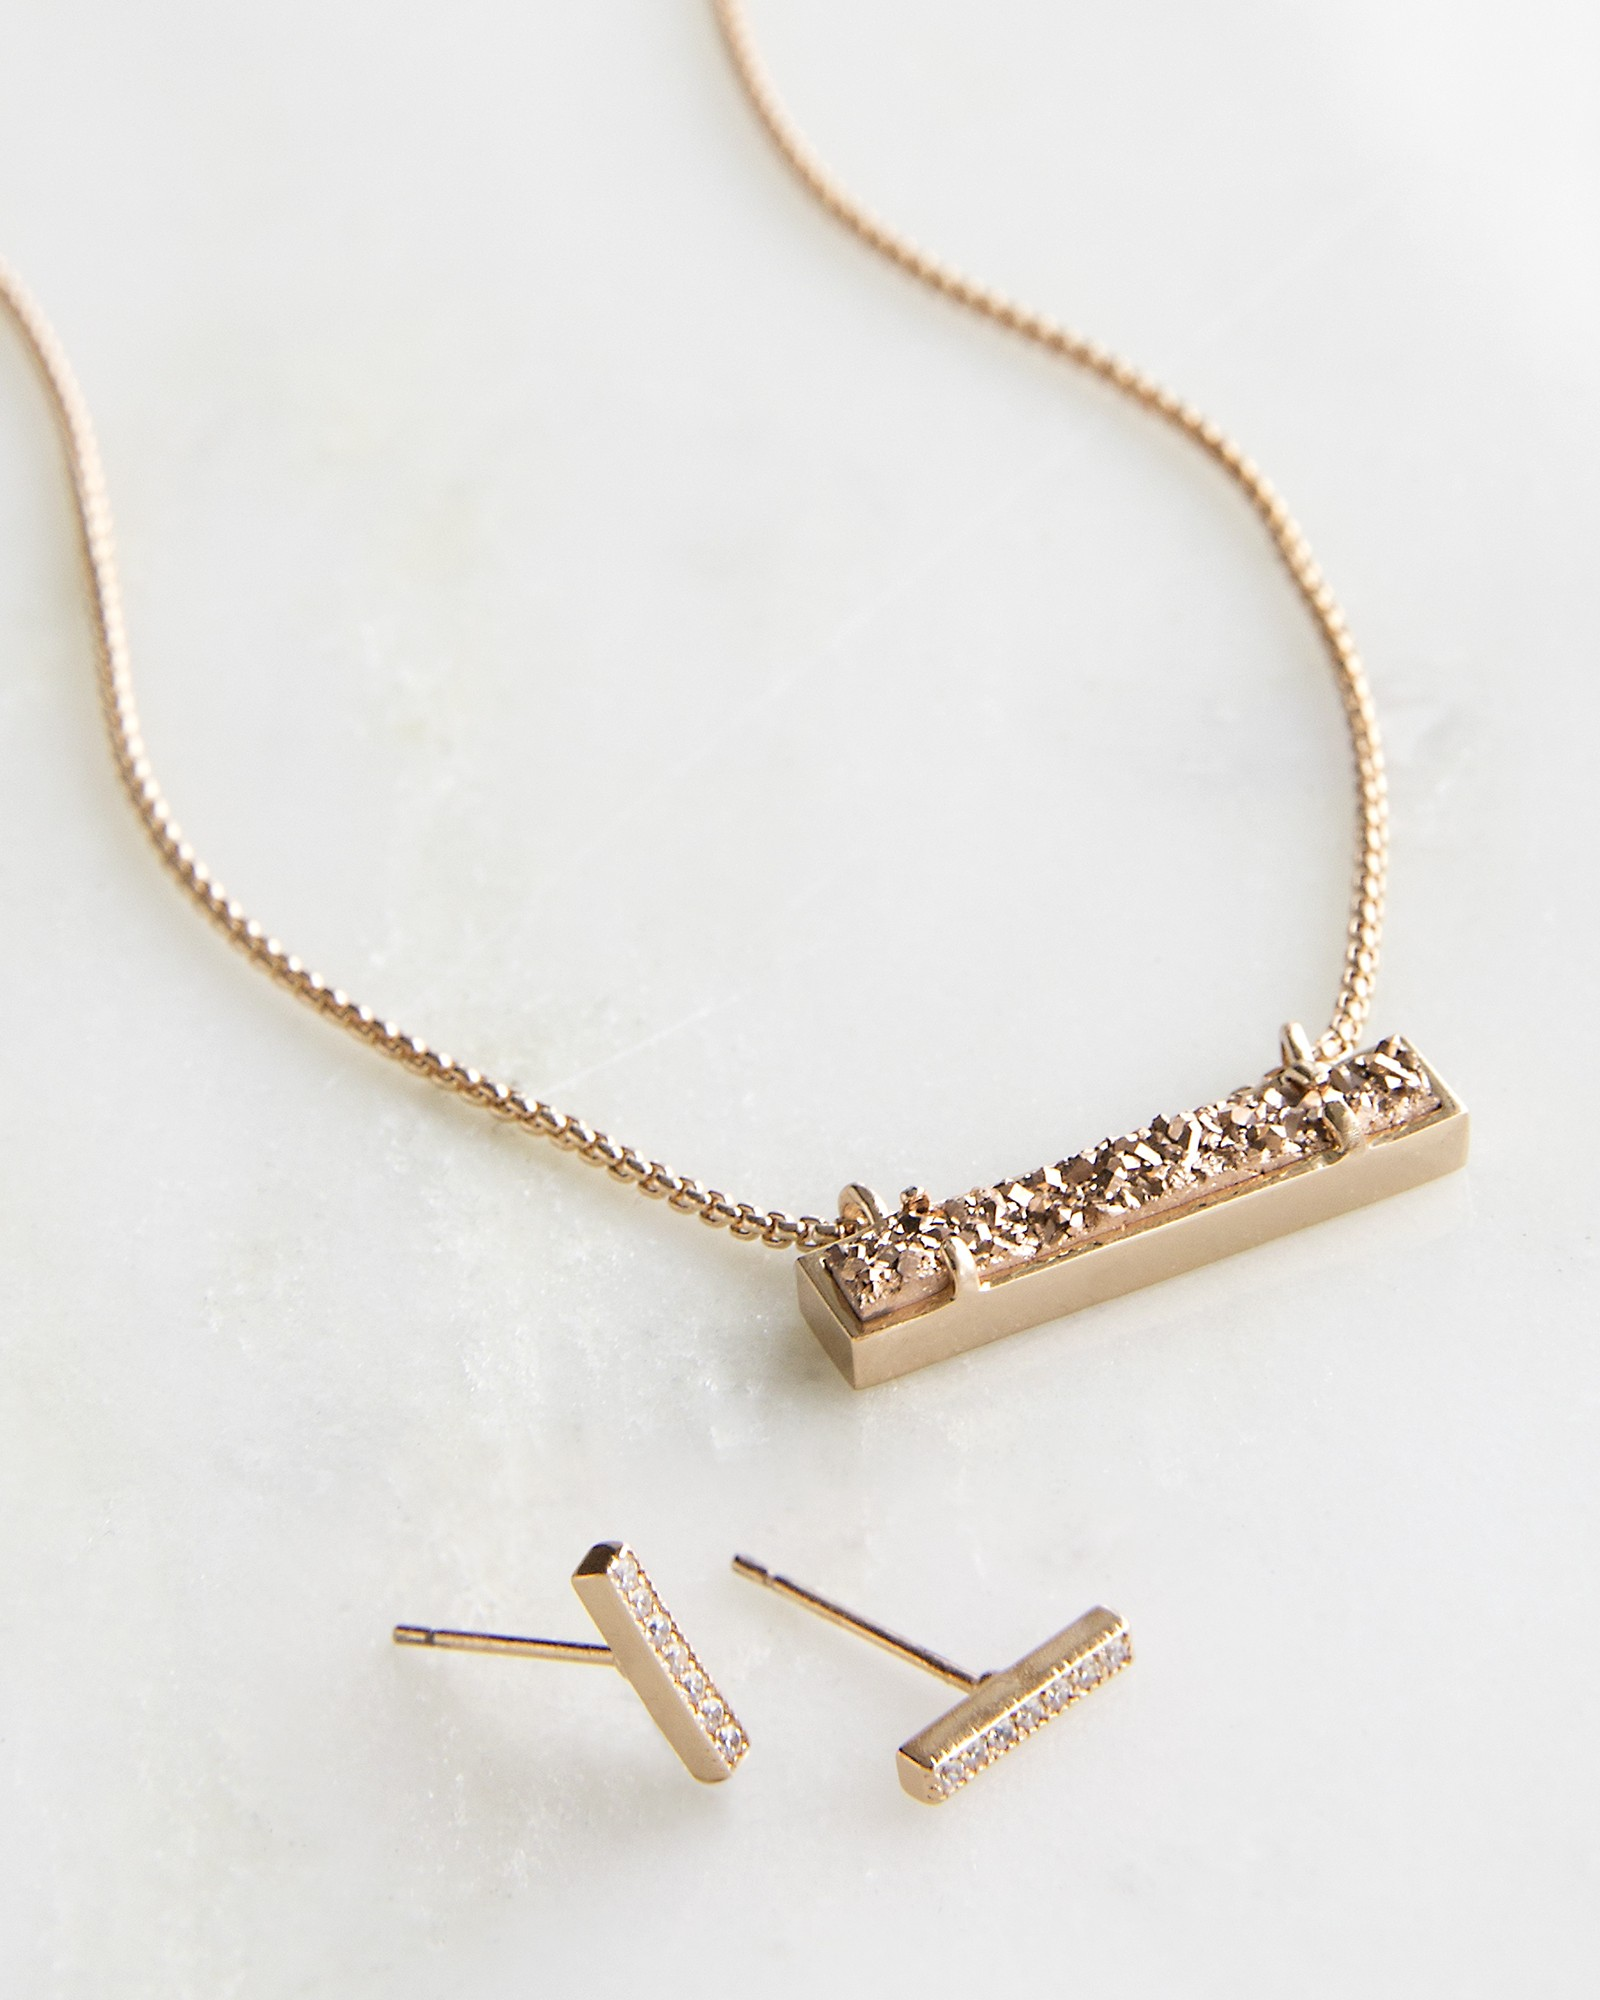 Jon Leanor Rose Gold Jewelry Set in Drusy Kendra Scott